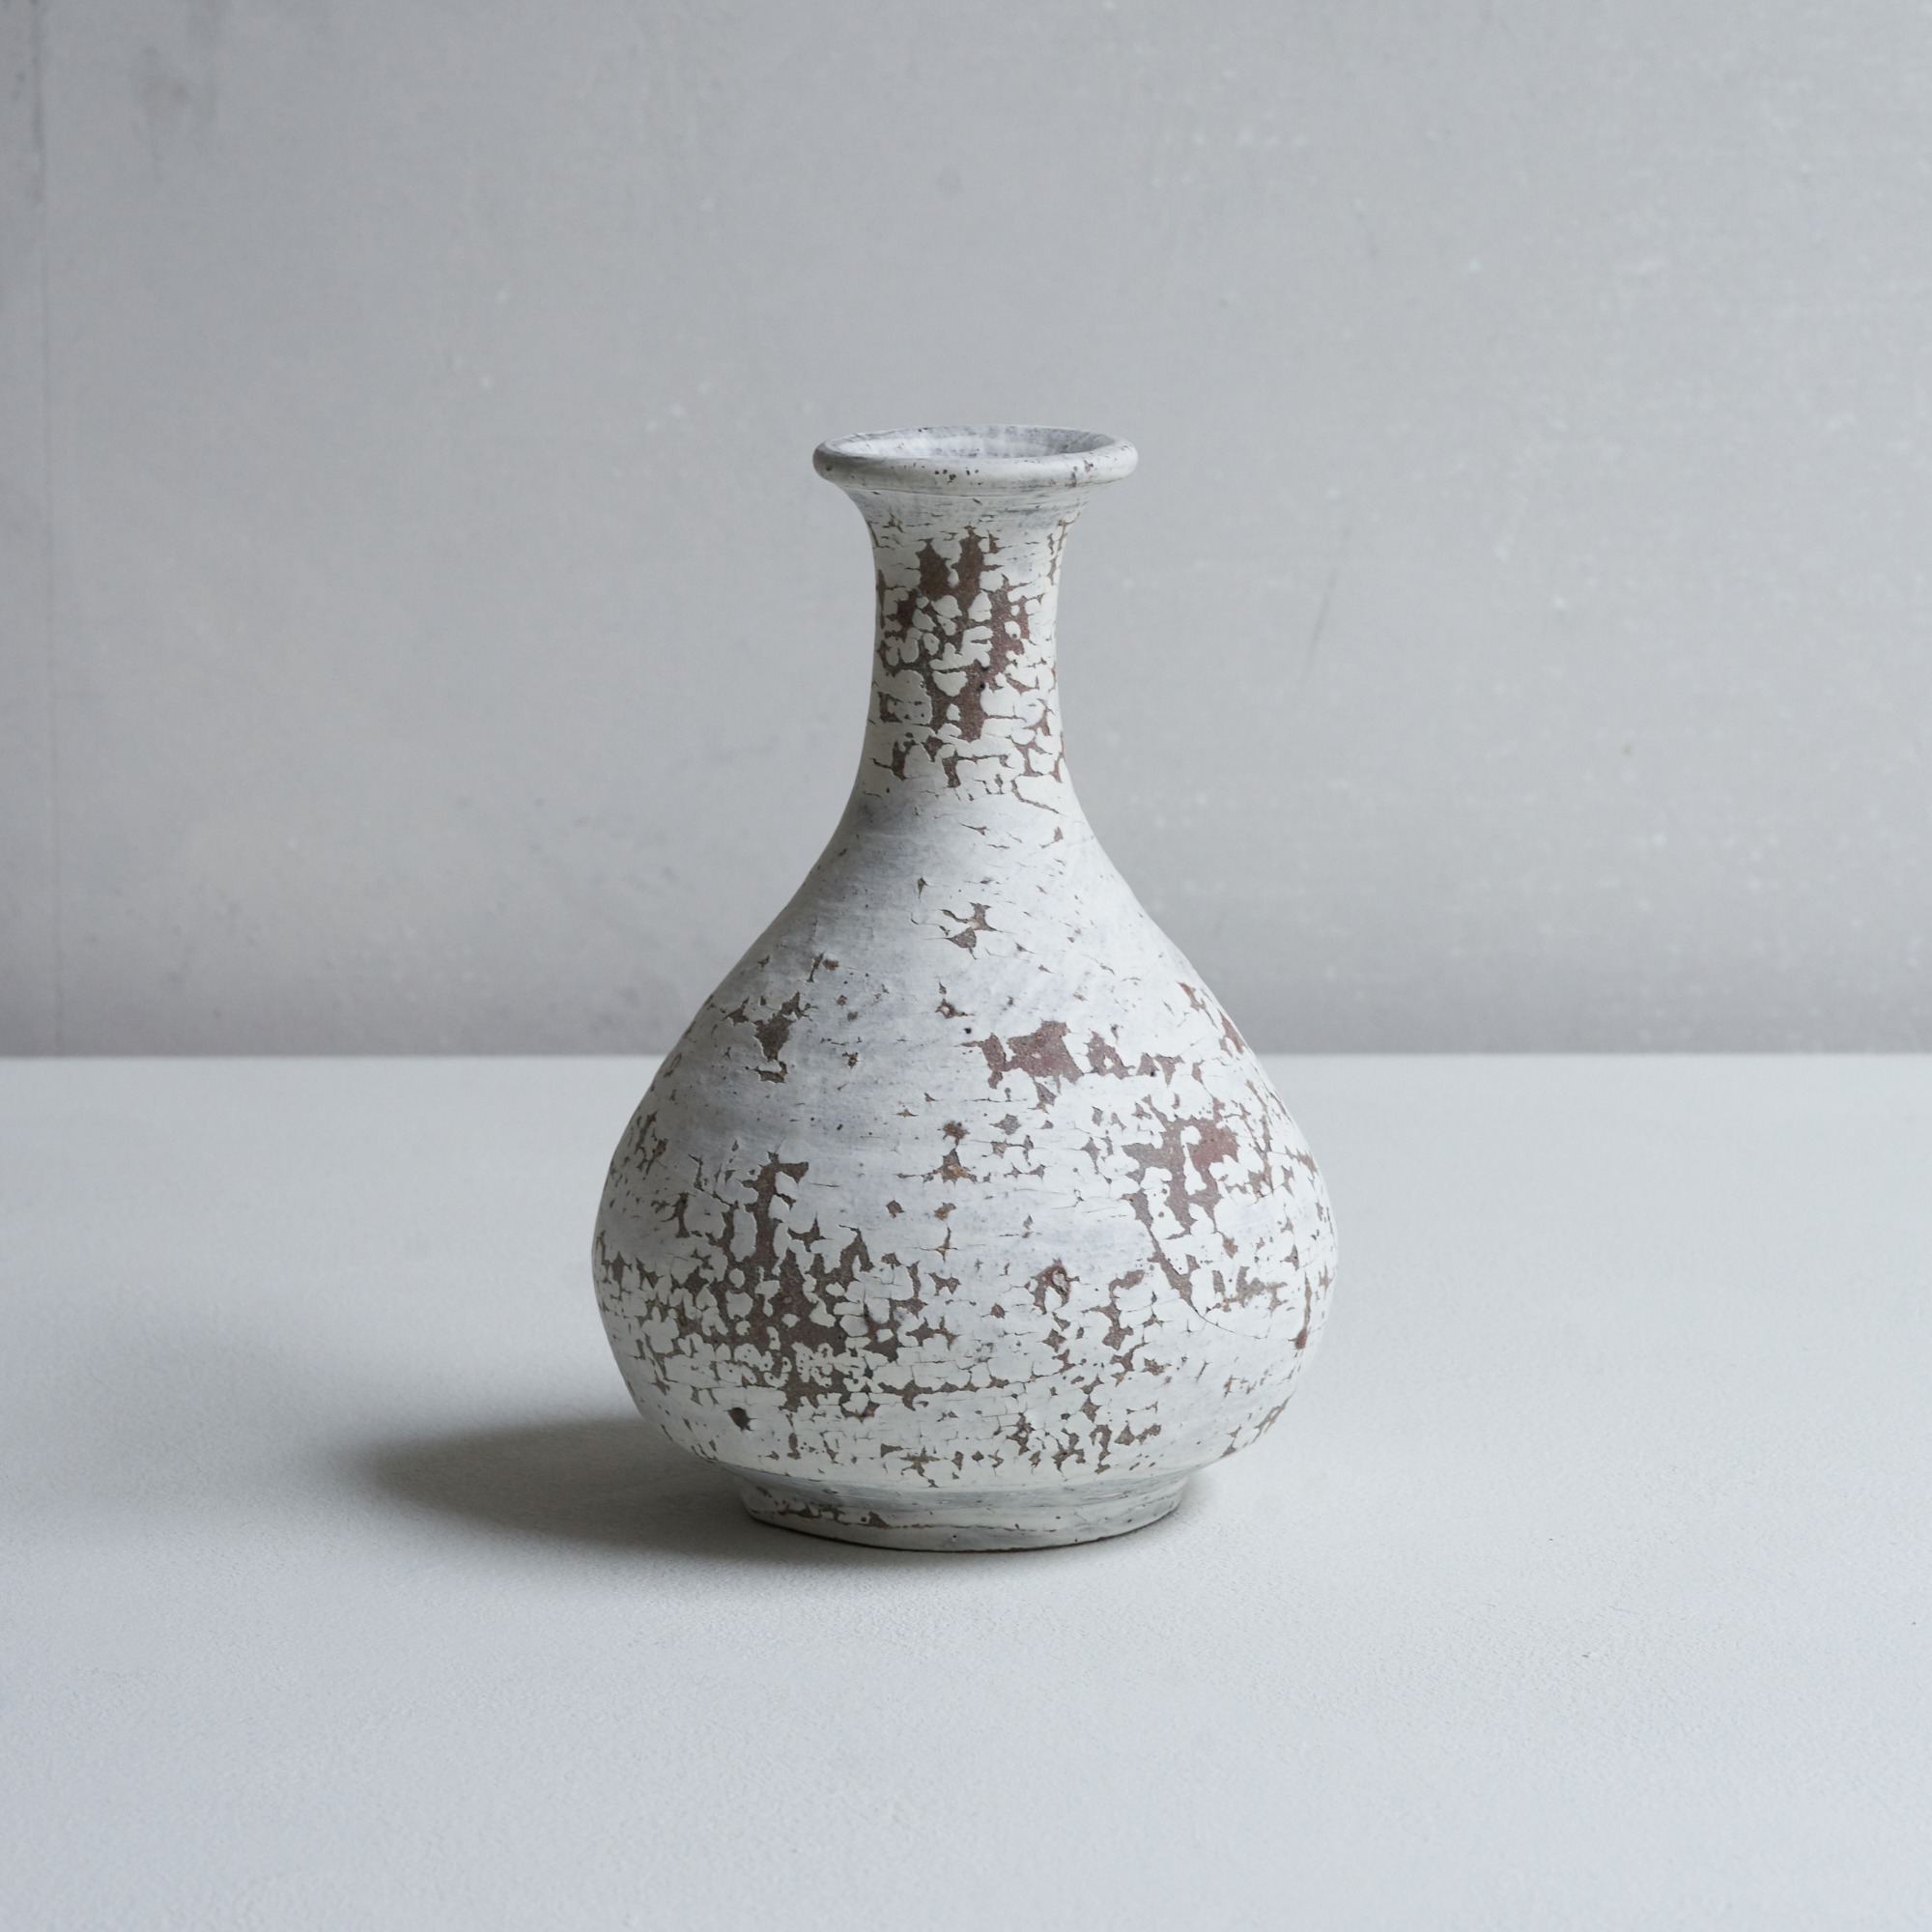 Matthias Kaiser Cracked Sliped Vase 2